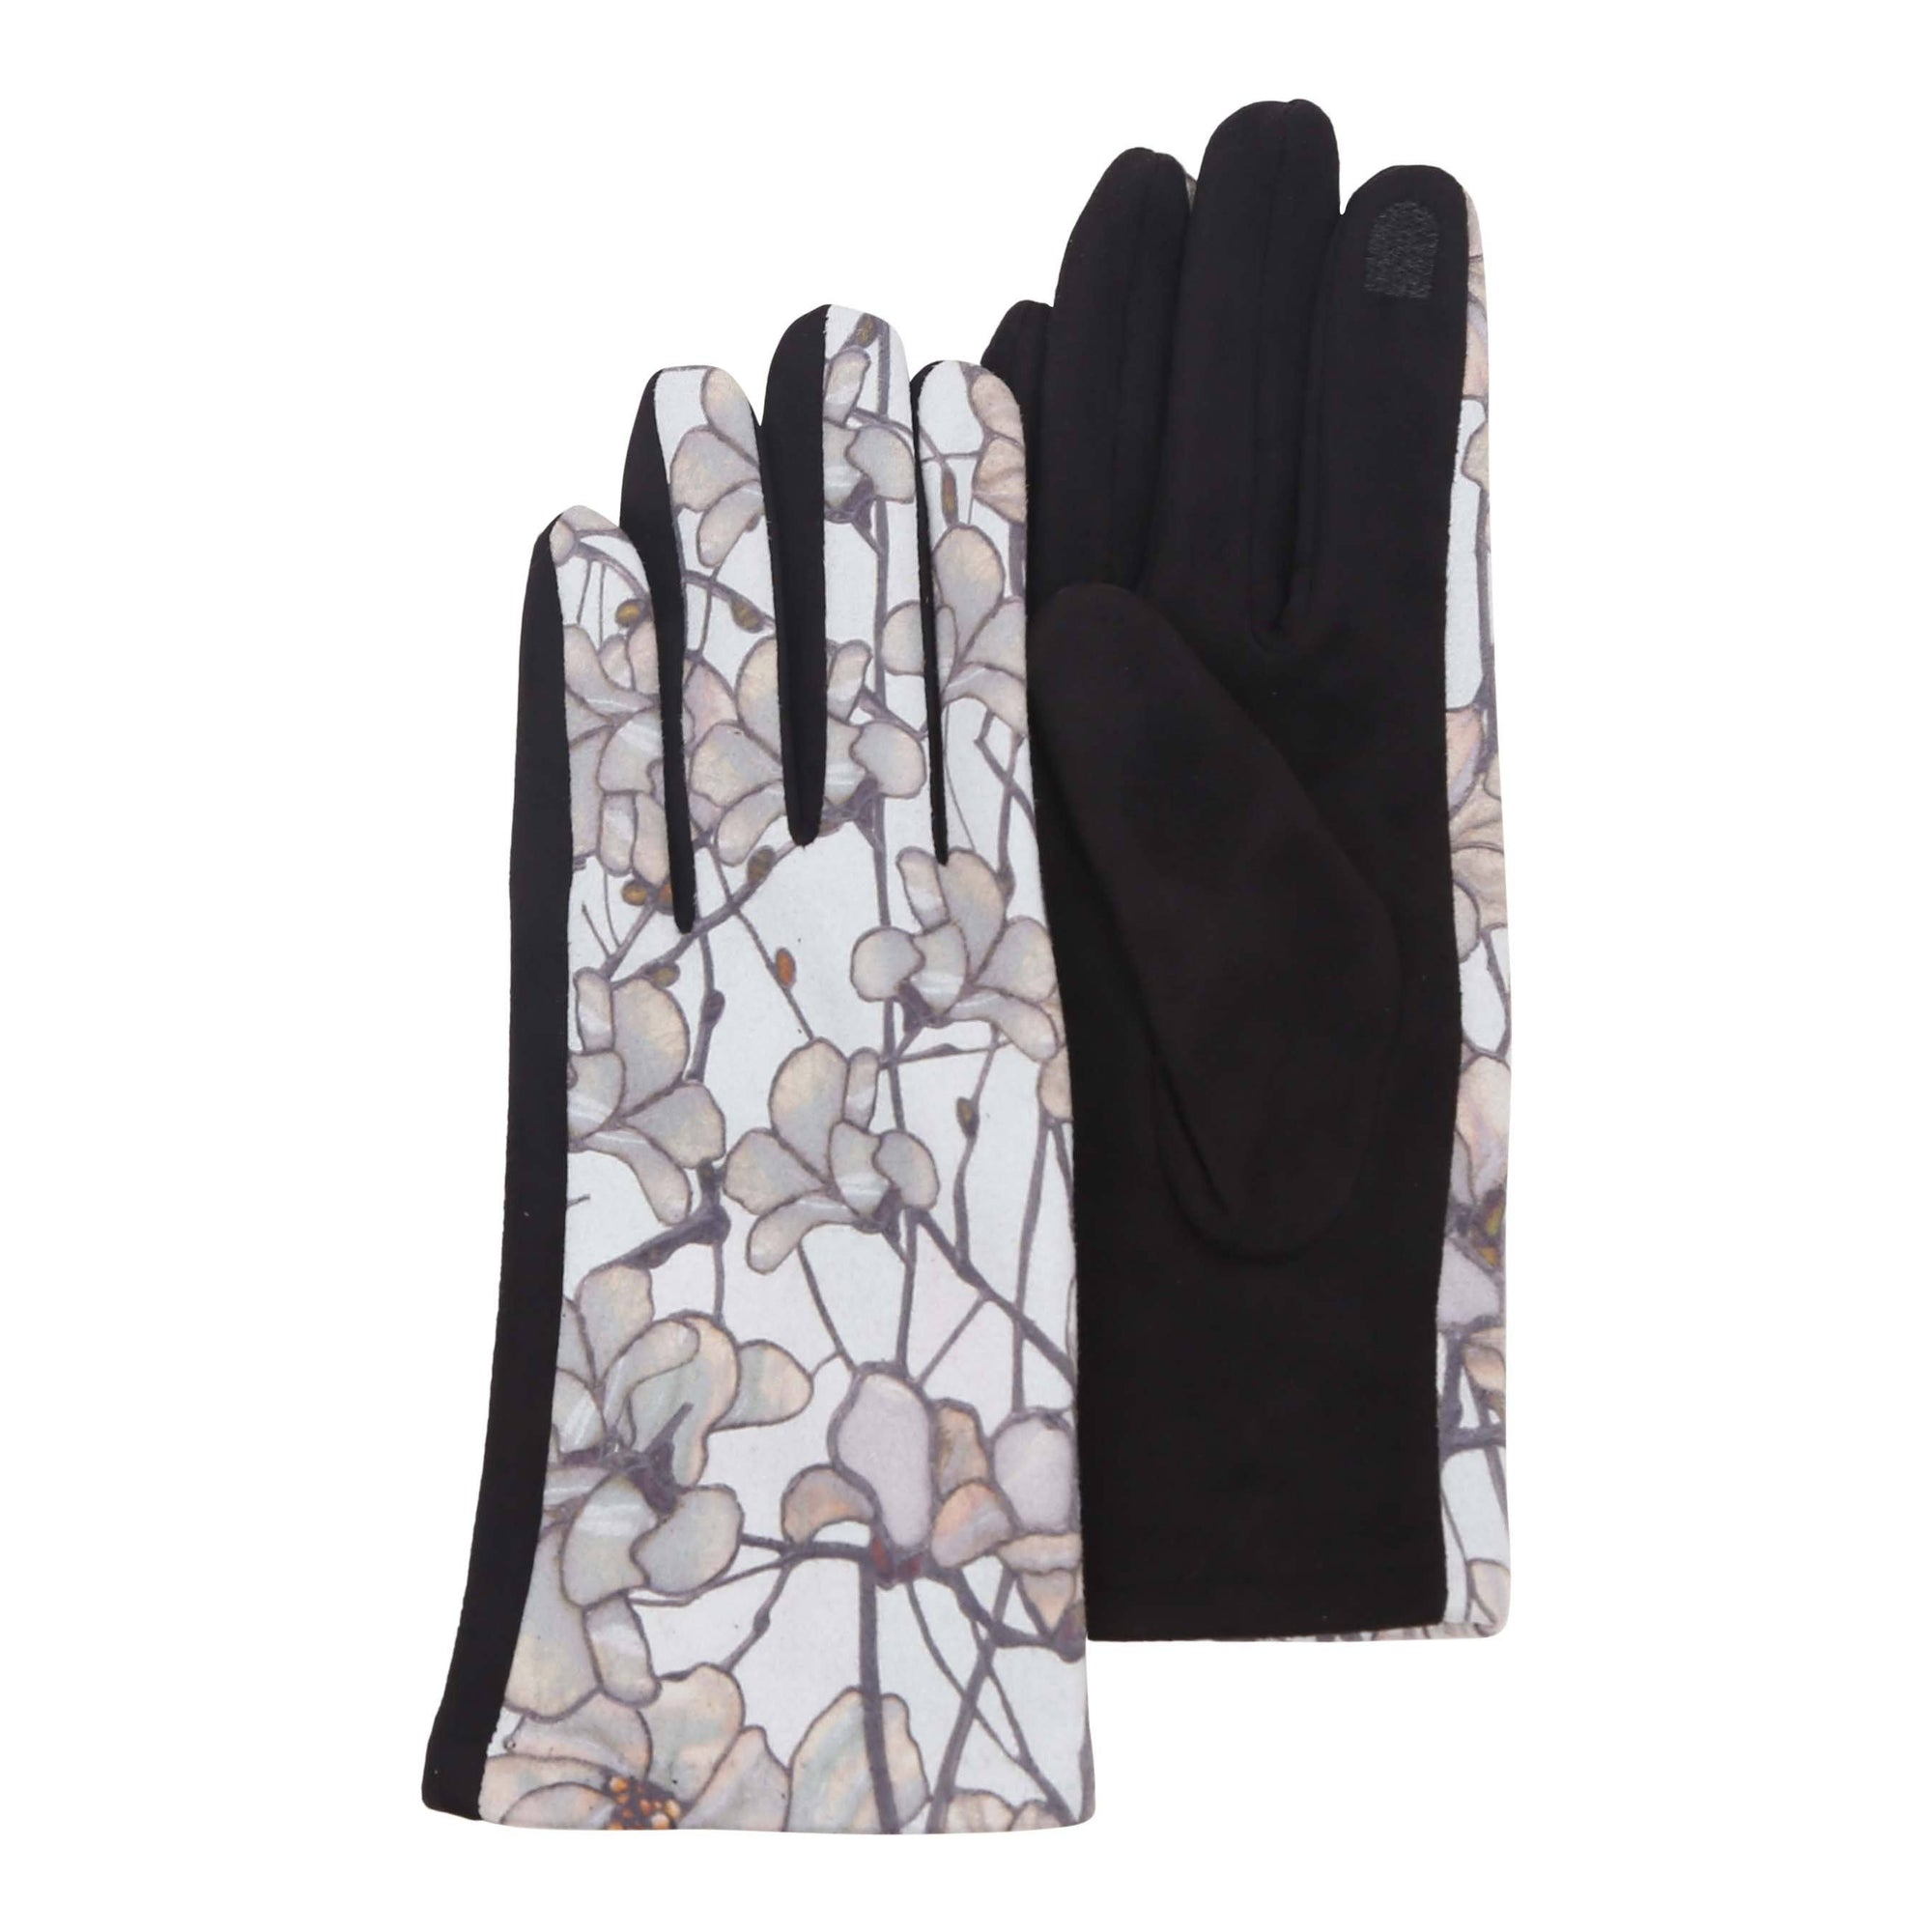 Pair of luxurious black and multi-color Tiffany Magnolia print texting gloves.